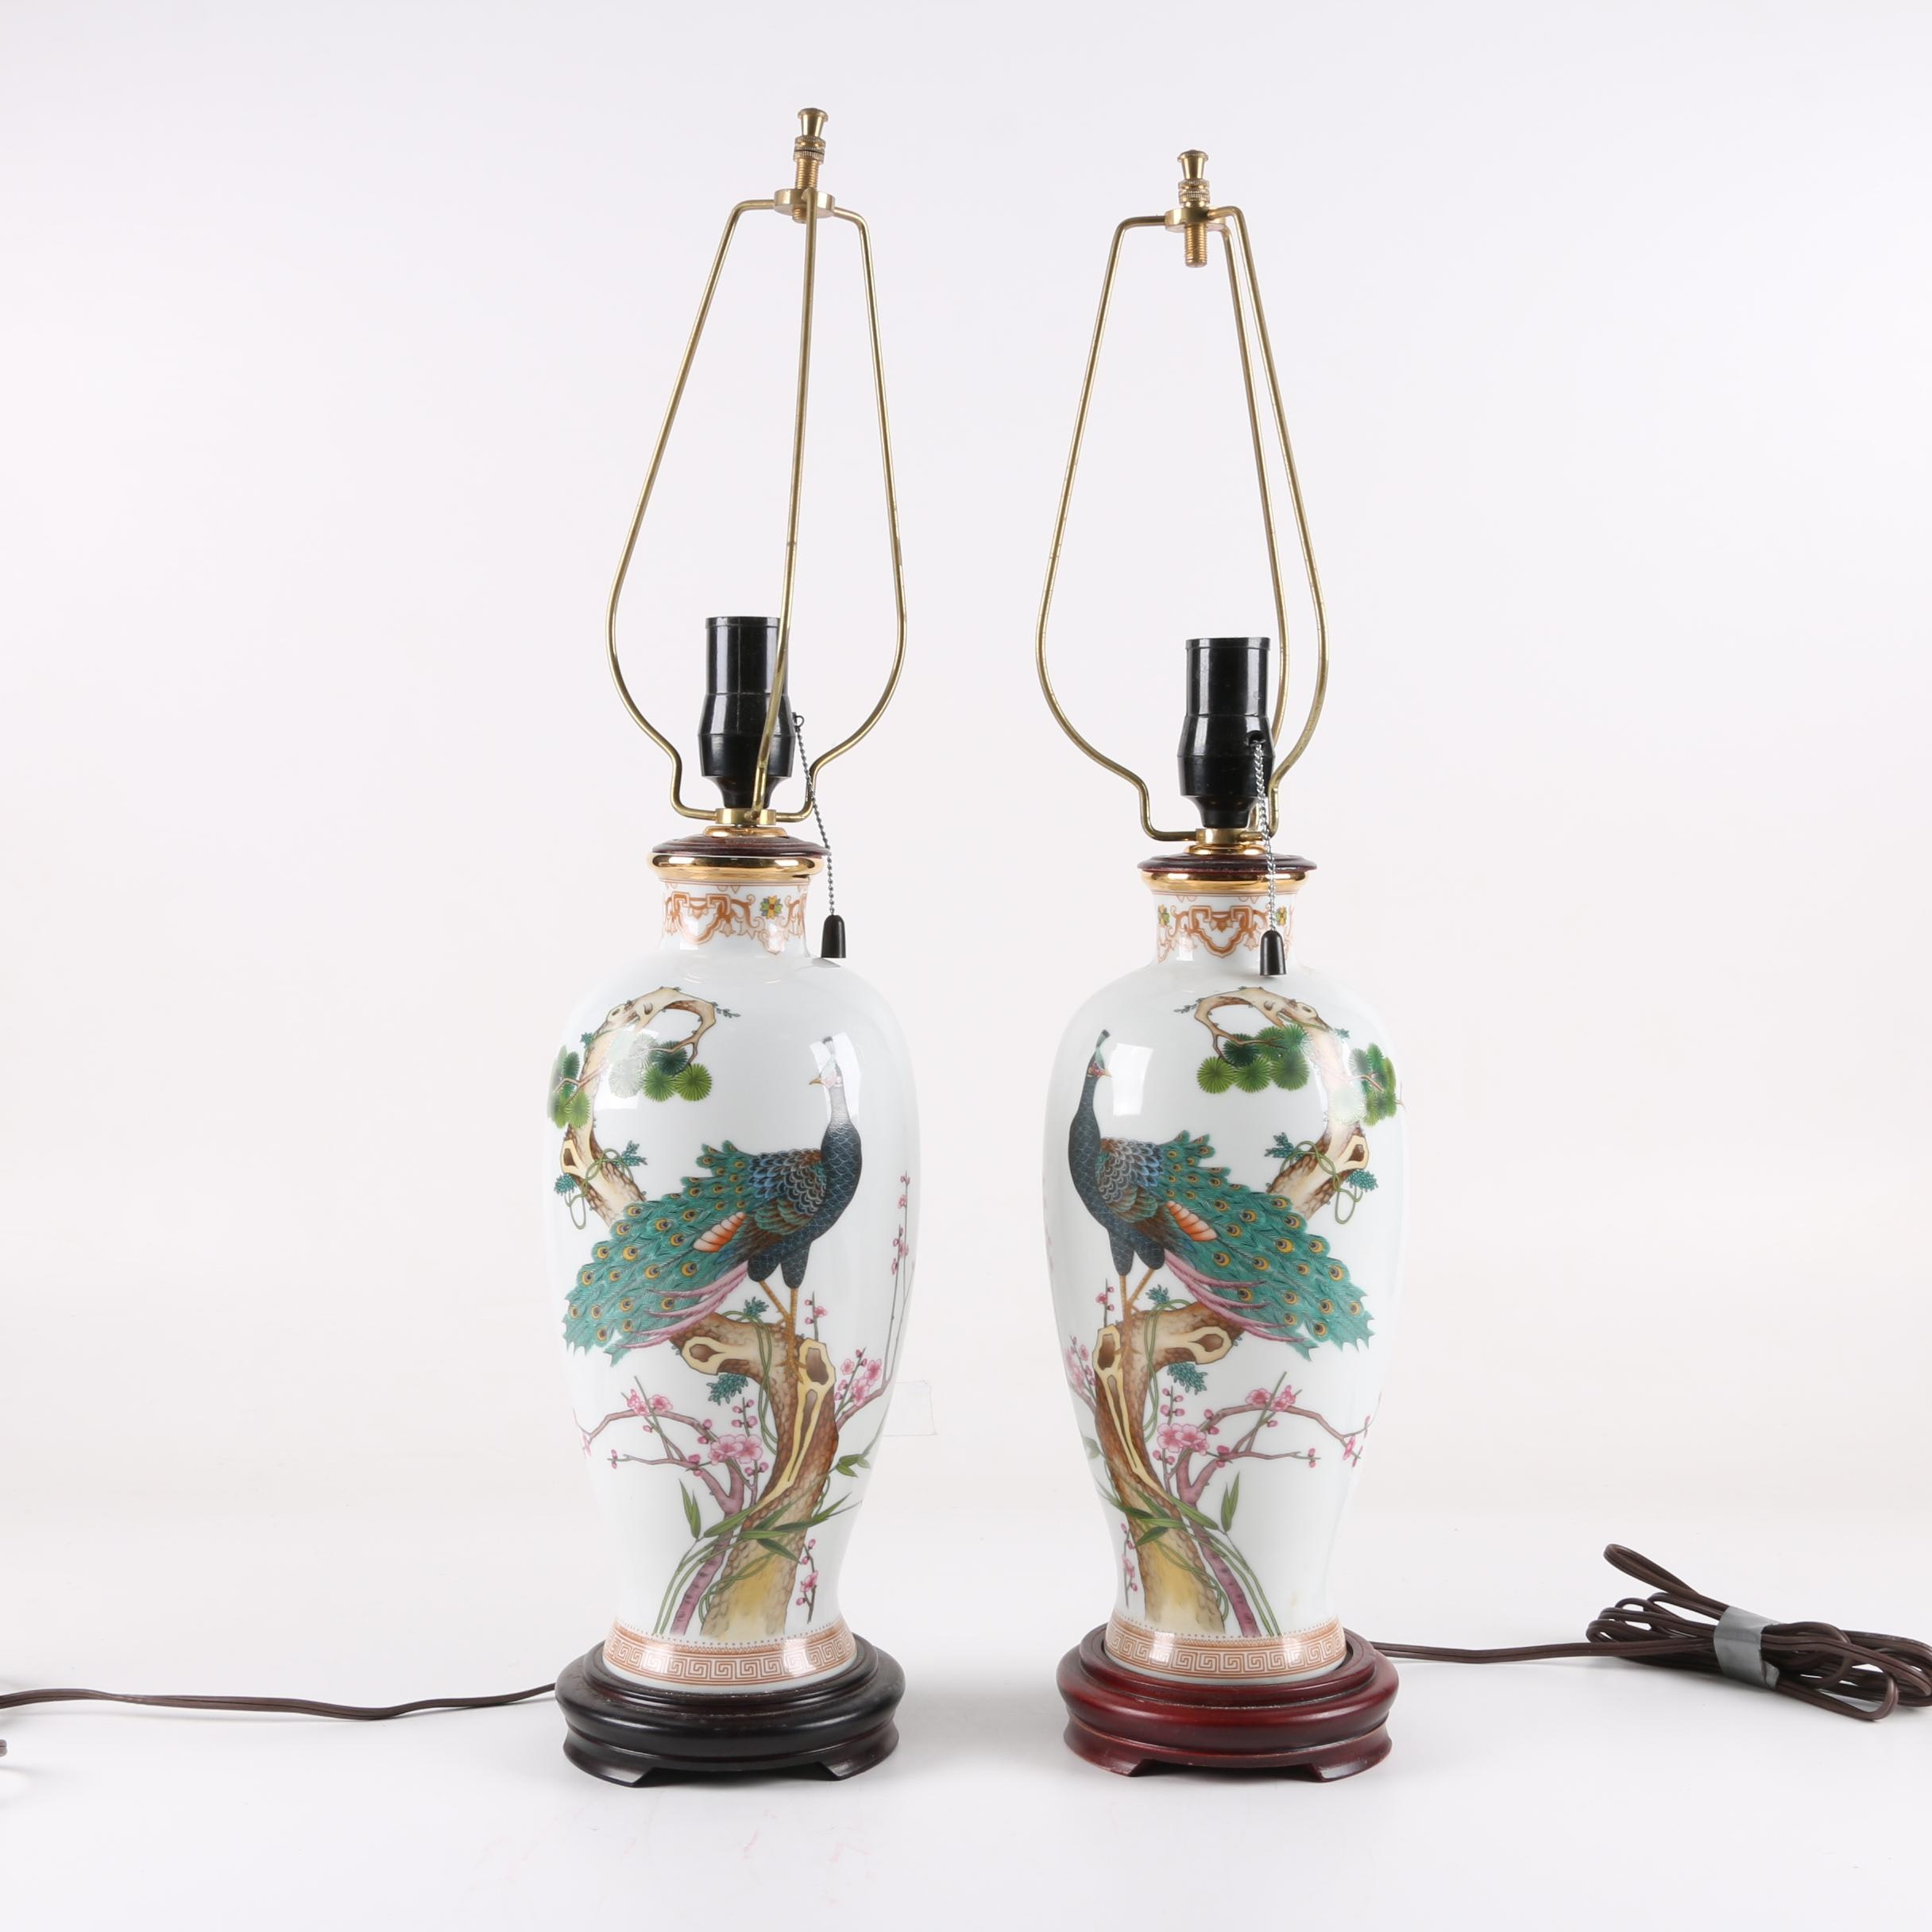 Chinese Ceramic Peacock Motif Table Lamps